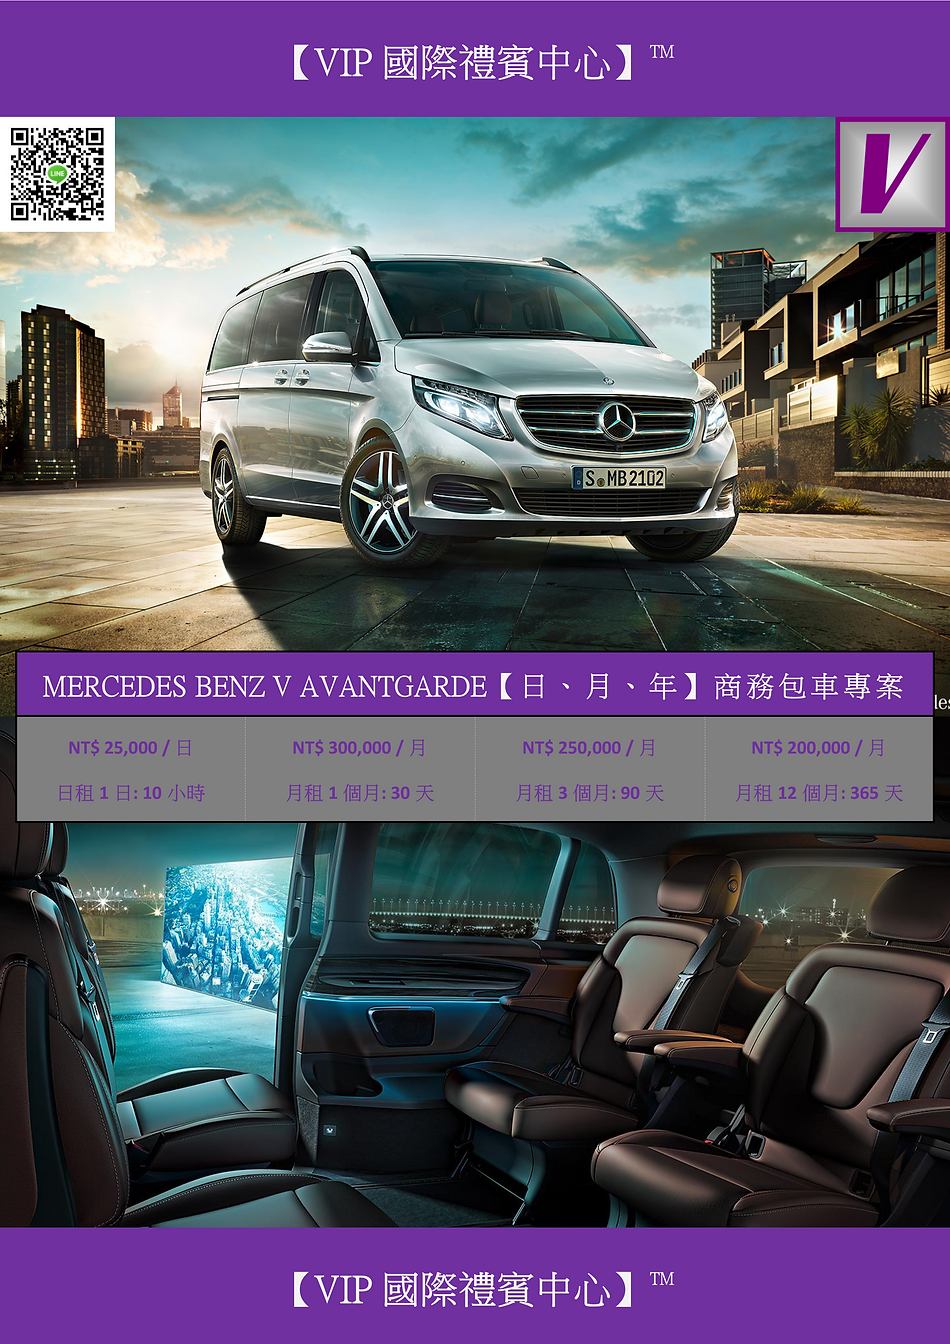 VIP GLOBAL MERCEDES BENZ V AVANTGARDE DM